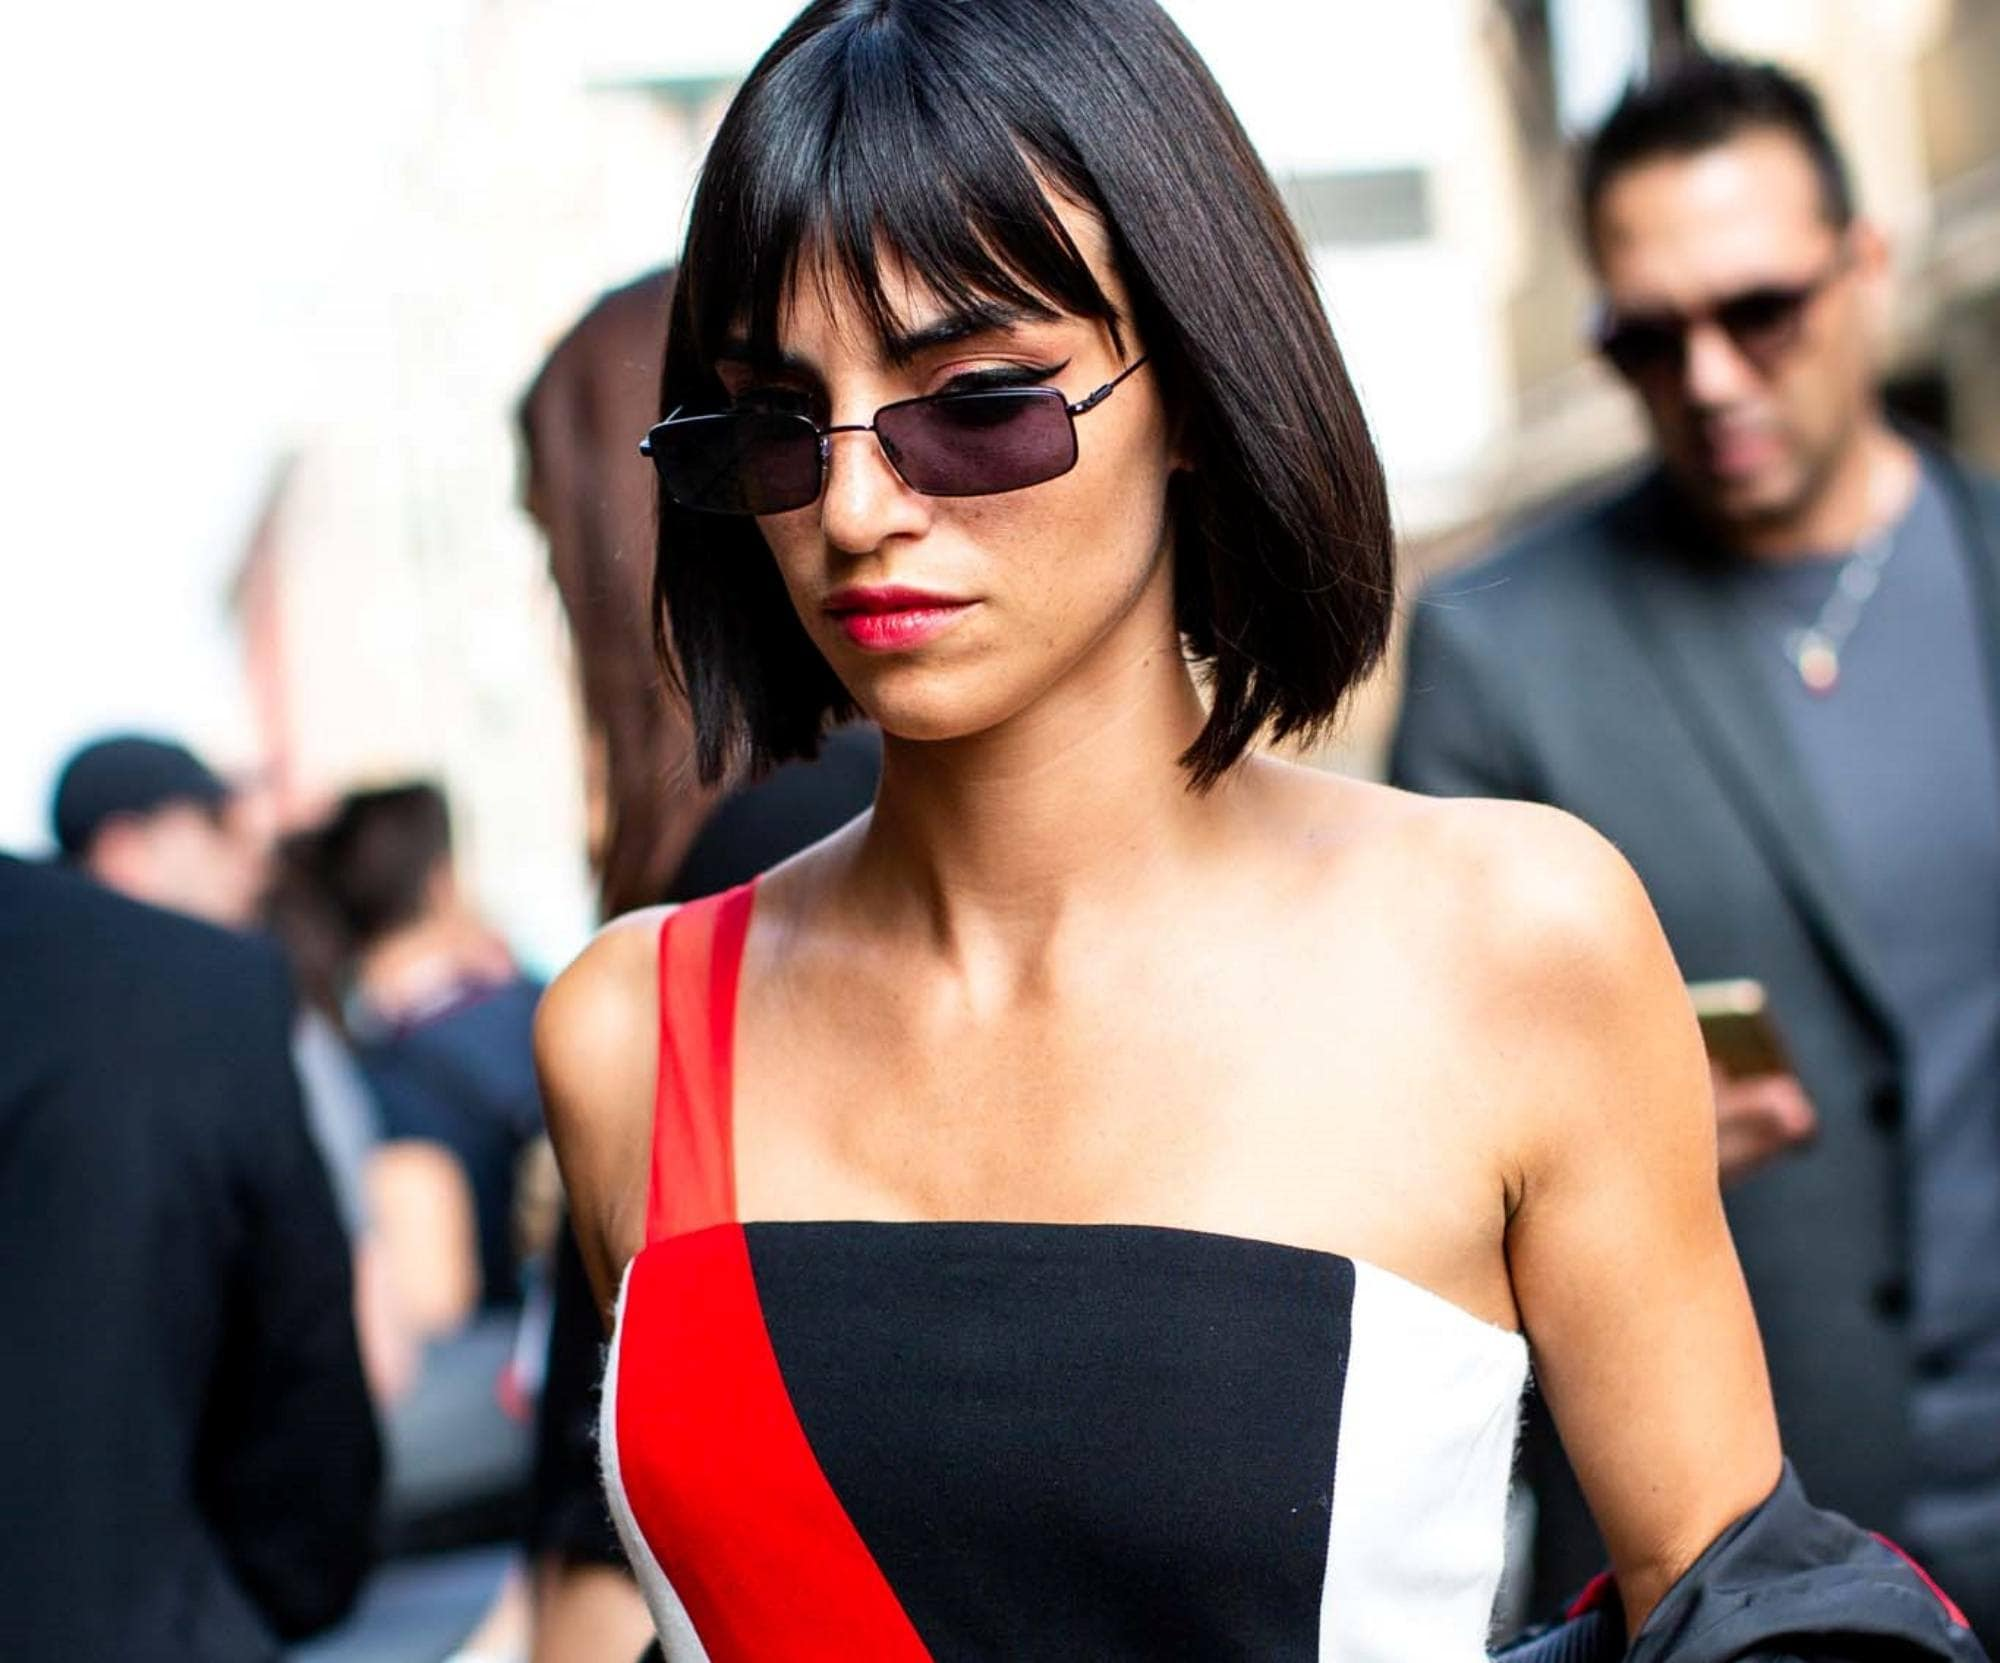 Straight bob: Closeup shot of a woman with short straight black hair with bangs wearing a tube top outdoors